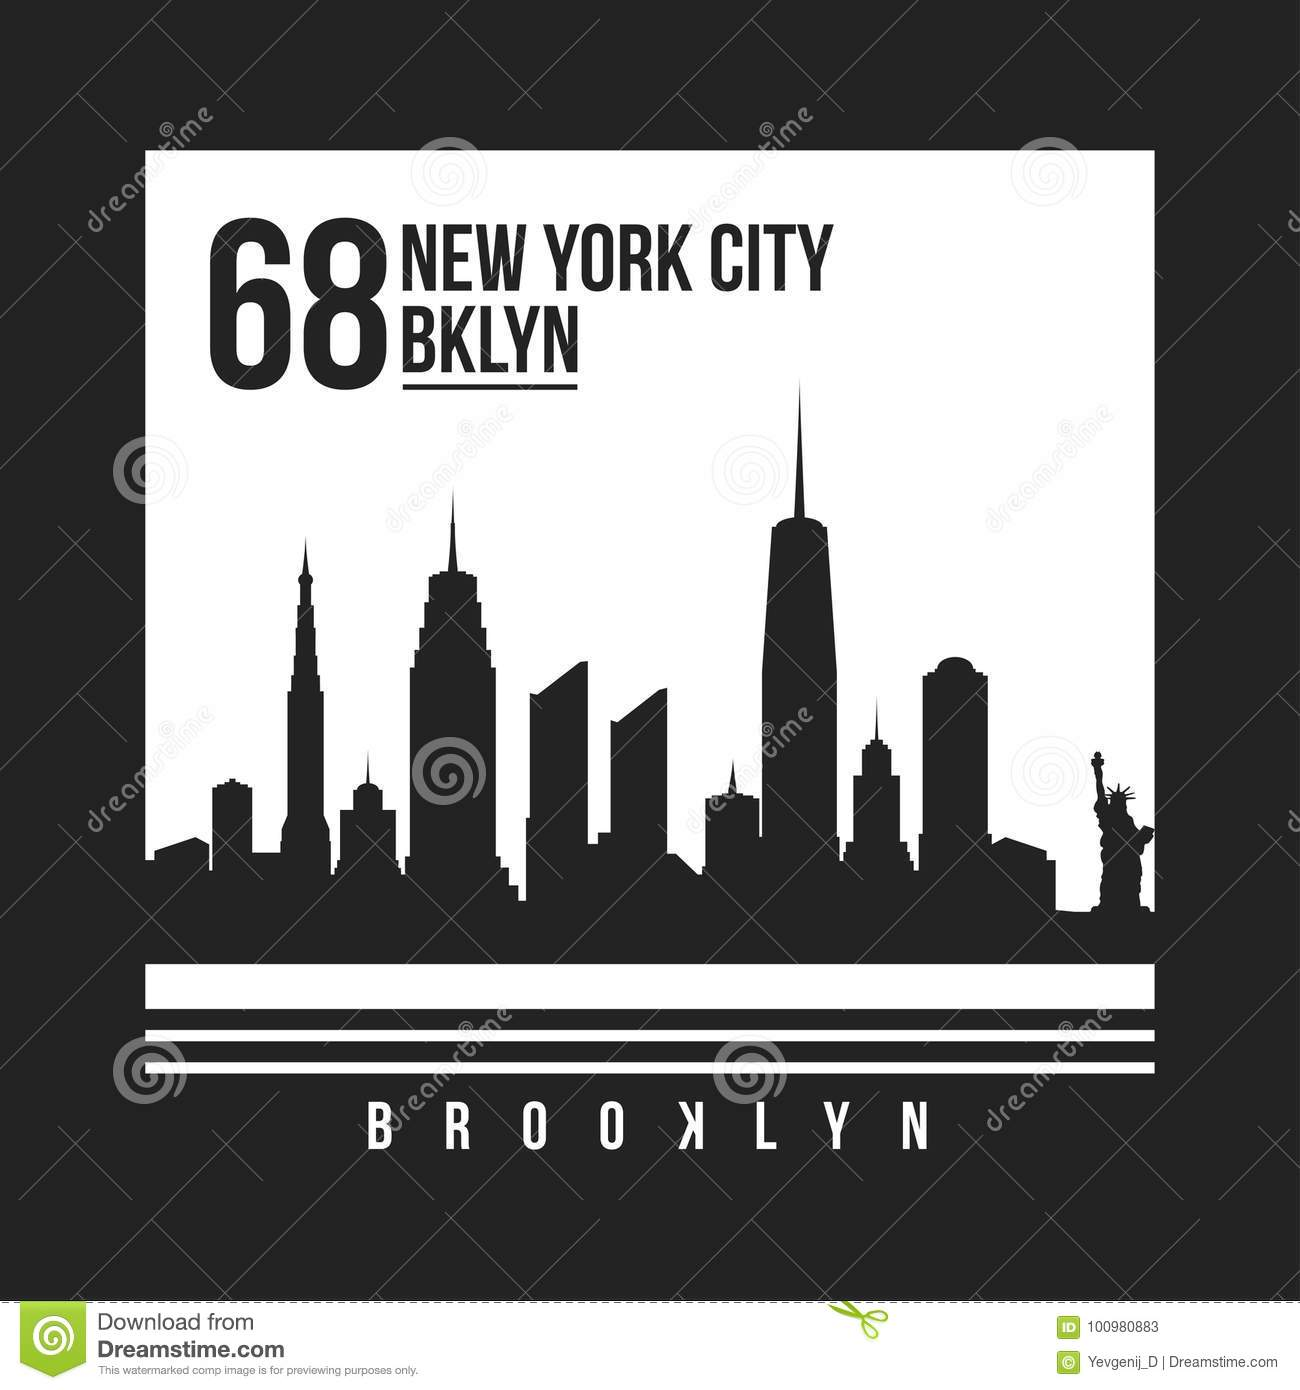 New York, Brooklyn typography for t-shirt print. New York City skyline for tee graphic. T-shirt design